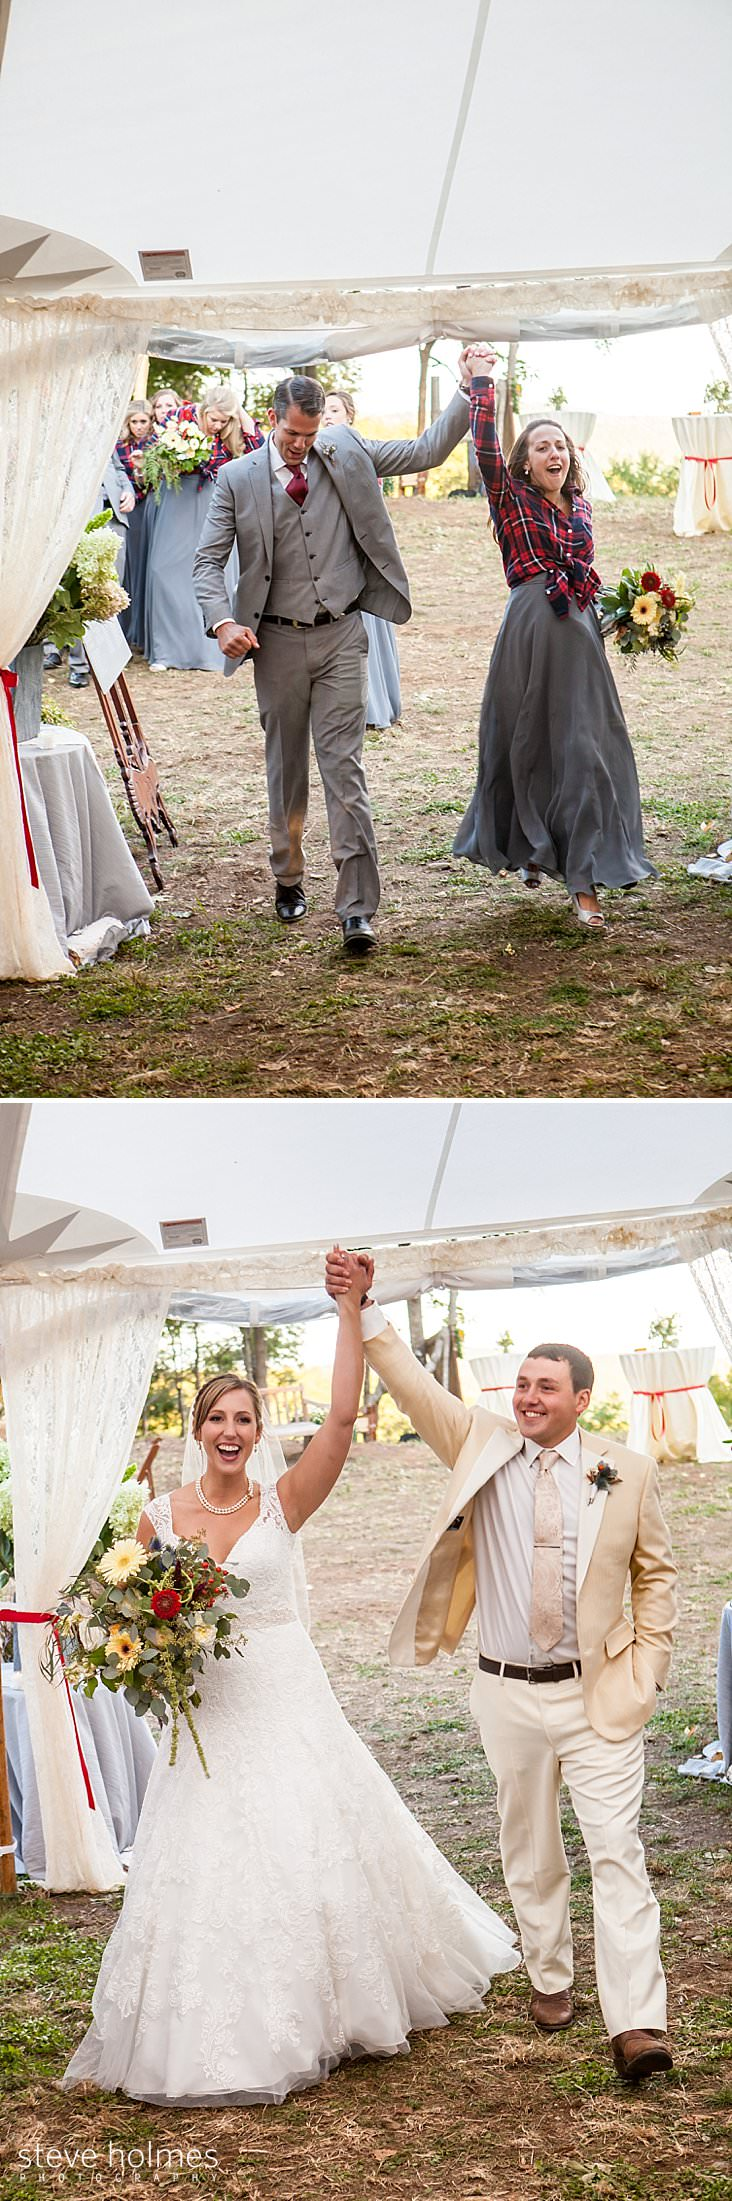 Wedding party enters the tent.jpg